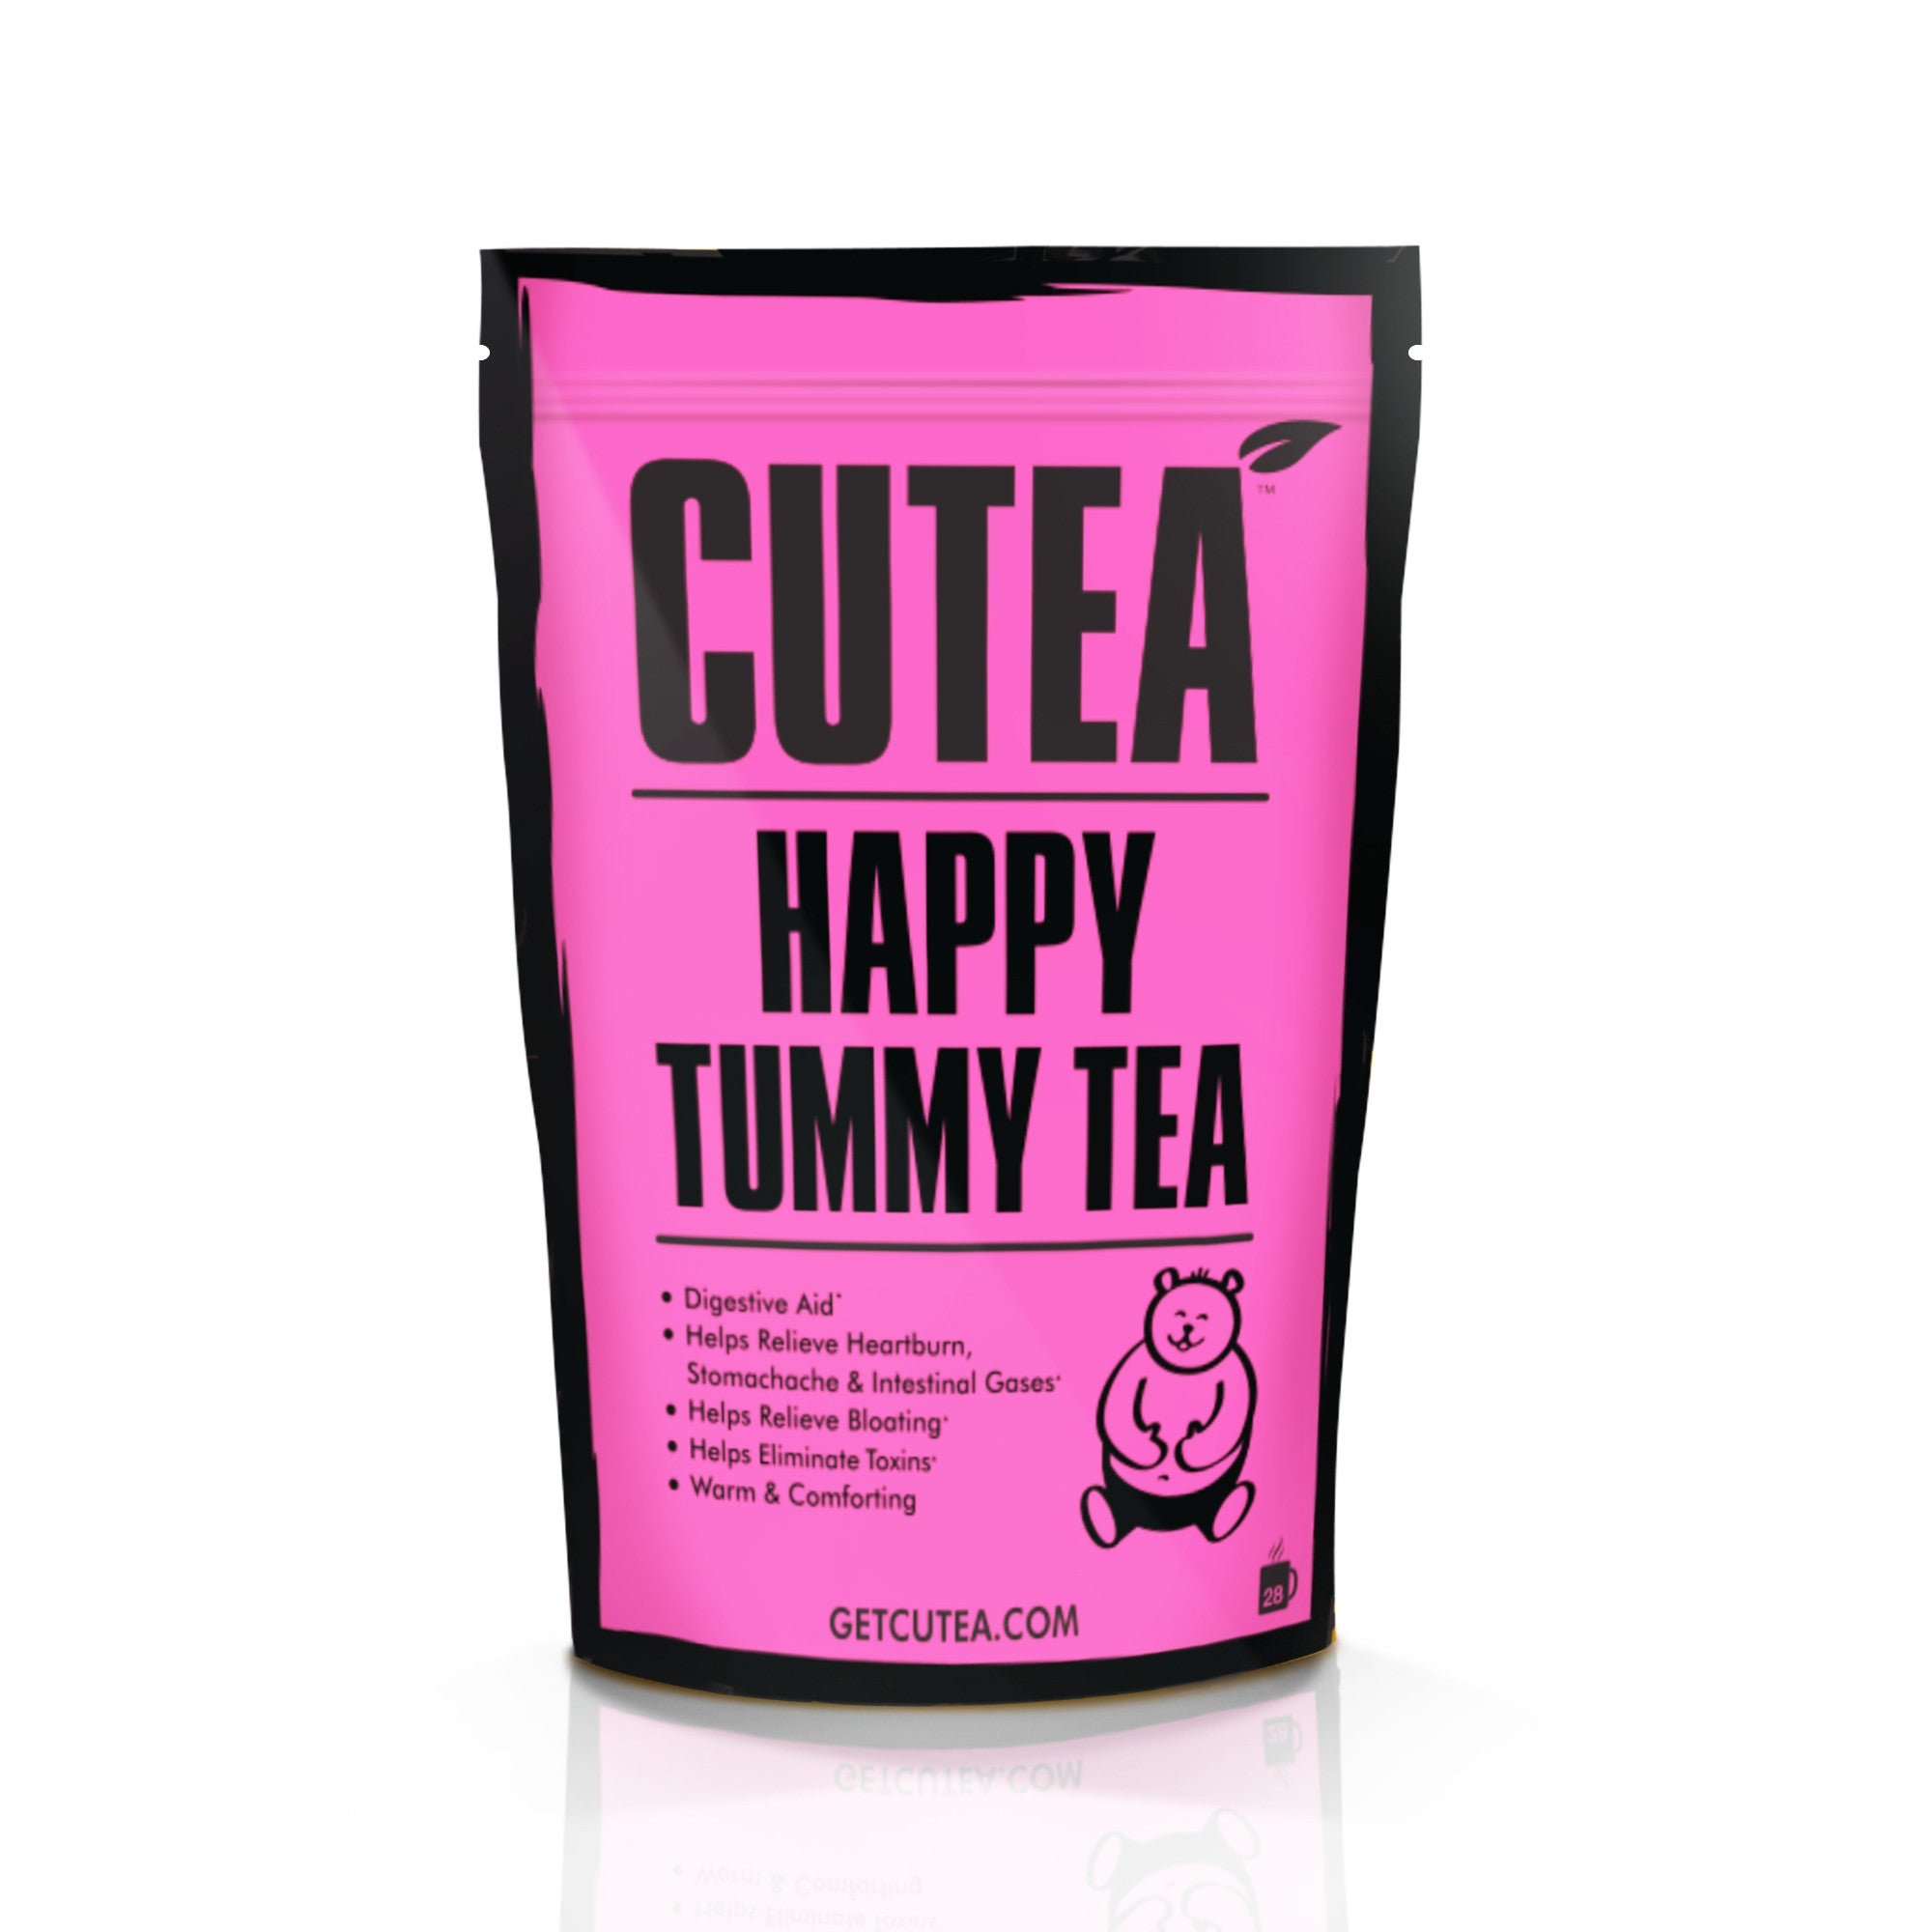 CUTEA Happy Tummy Tea - 28 Bags